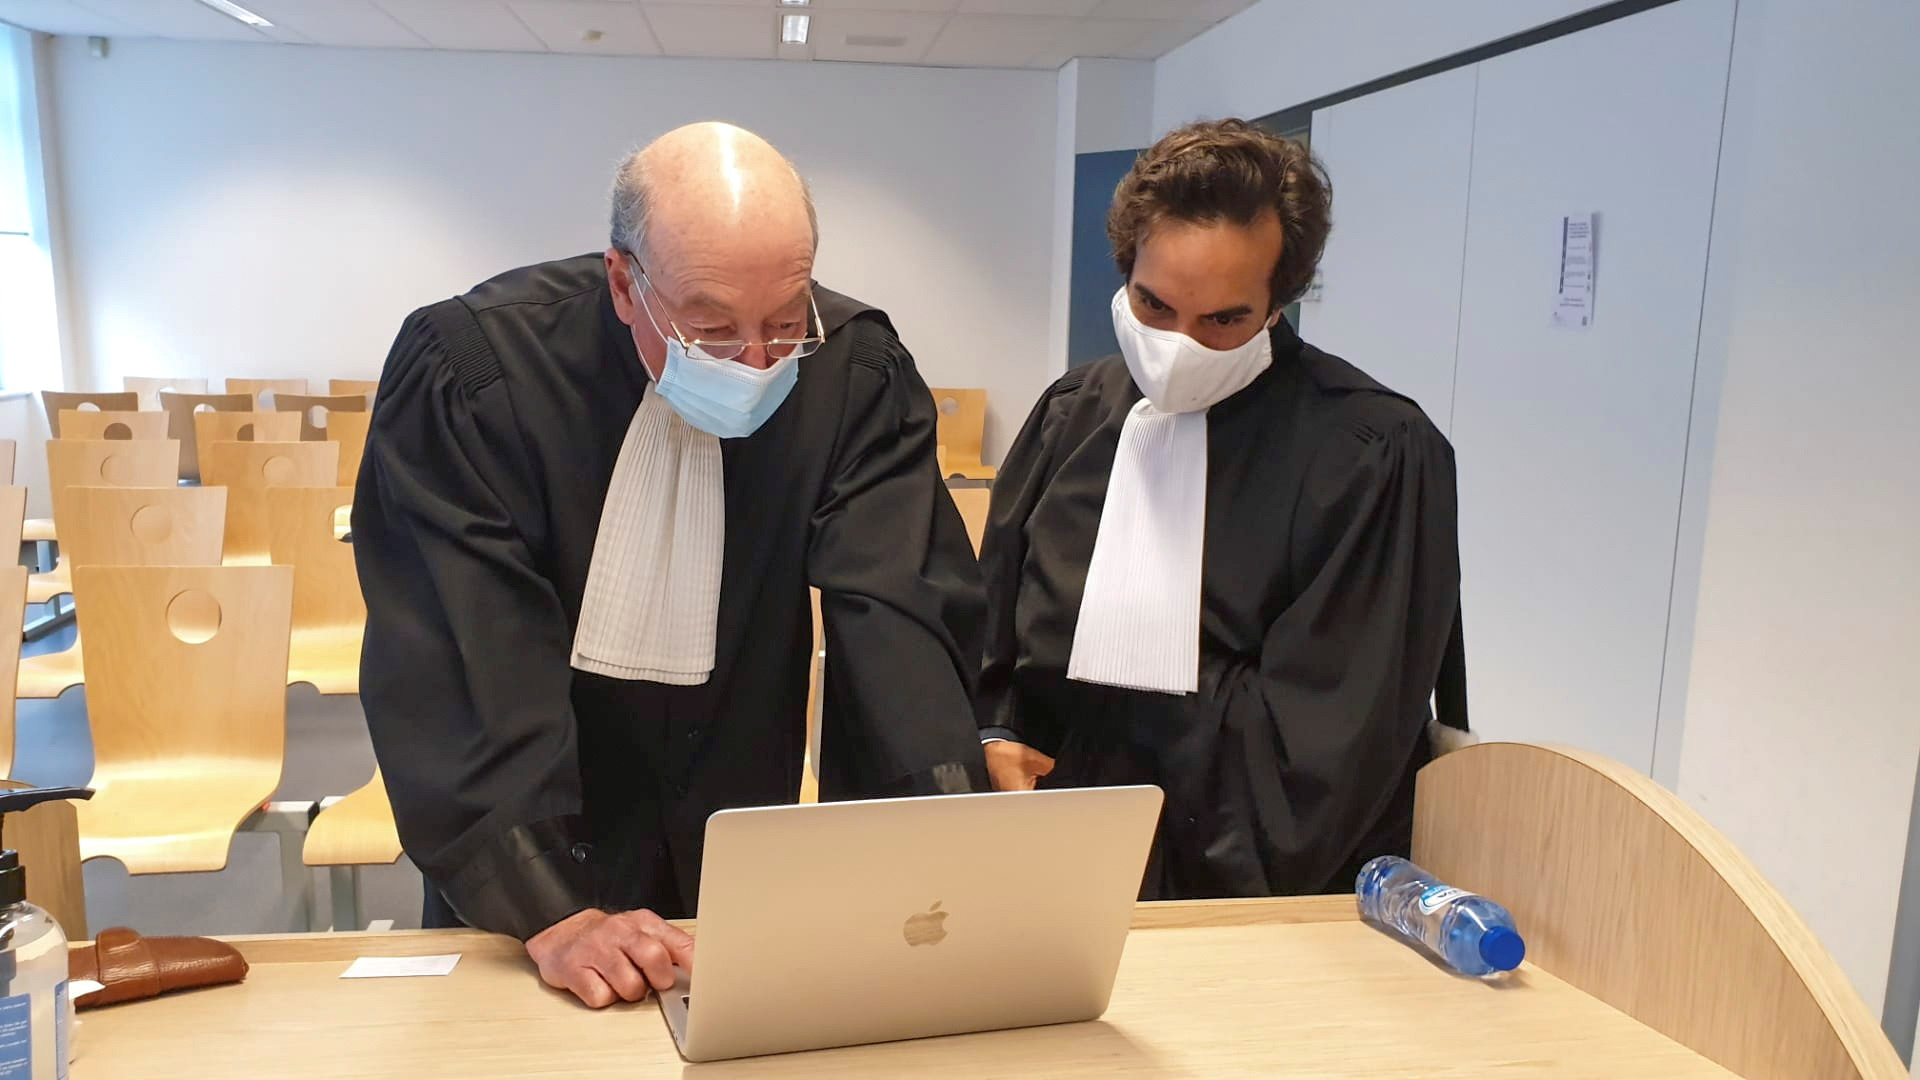 Lawyers for the European Commission, Paul Alain Foriers and Rafael Jafferali, attend the first hearing at a Belgian court in the legal case against the Anglo-Swedish firm AstraZeneca, accused by the EU of having breached its contract for the supply of COVID-19 vaccines, in Brussels, Belgium April 28, 2021. REUTERS/Clement Rossignol